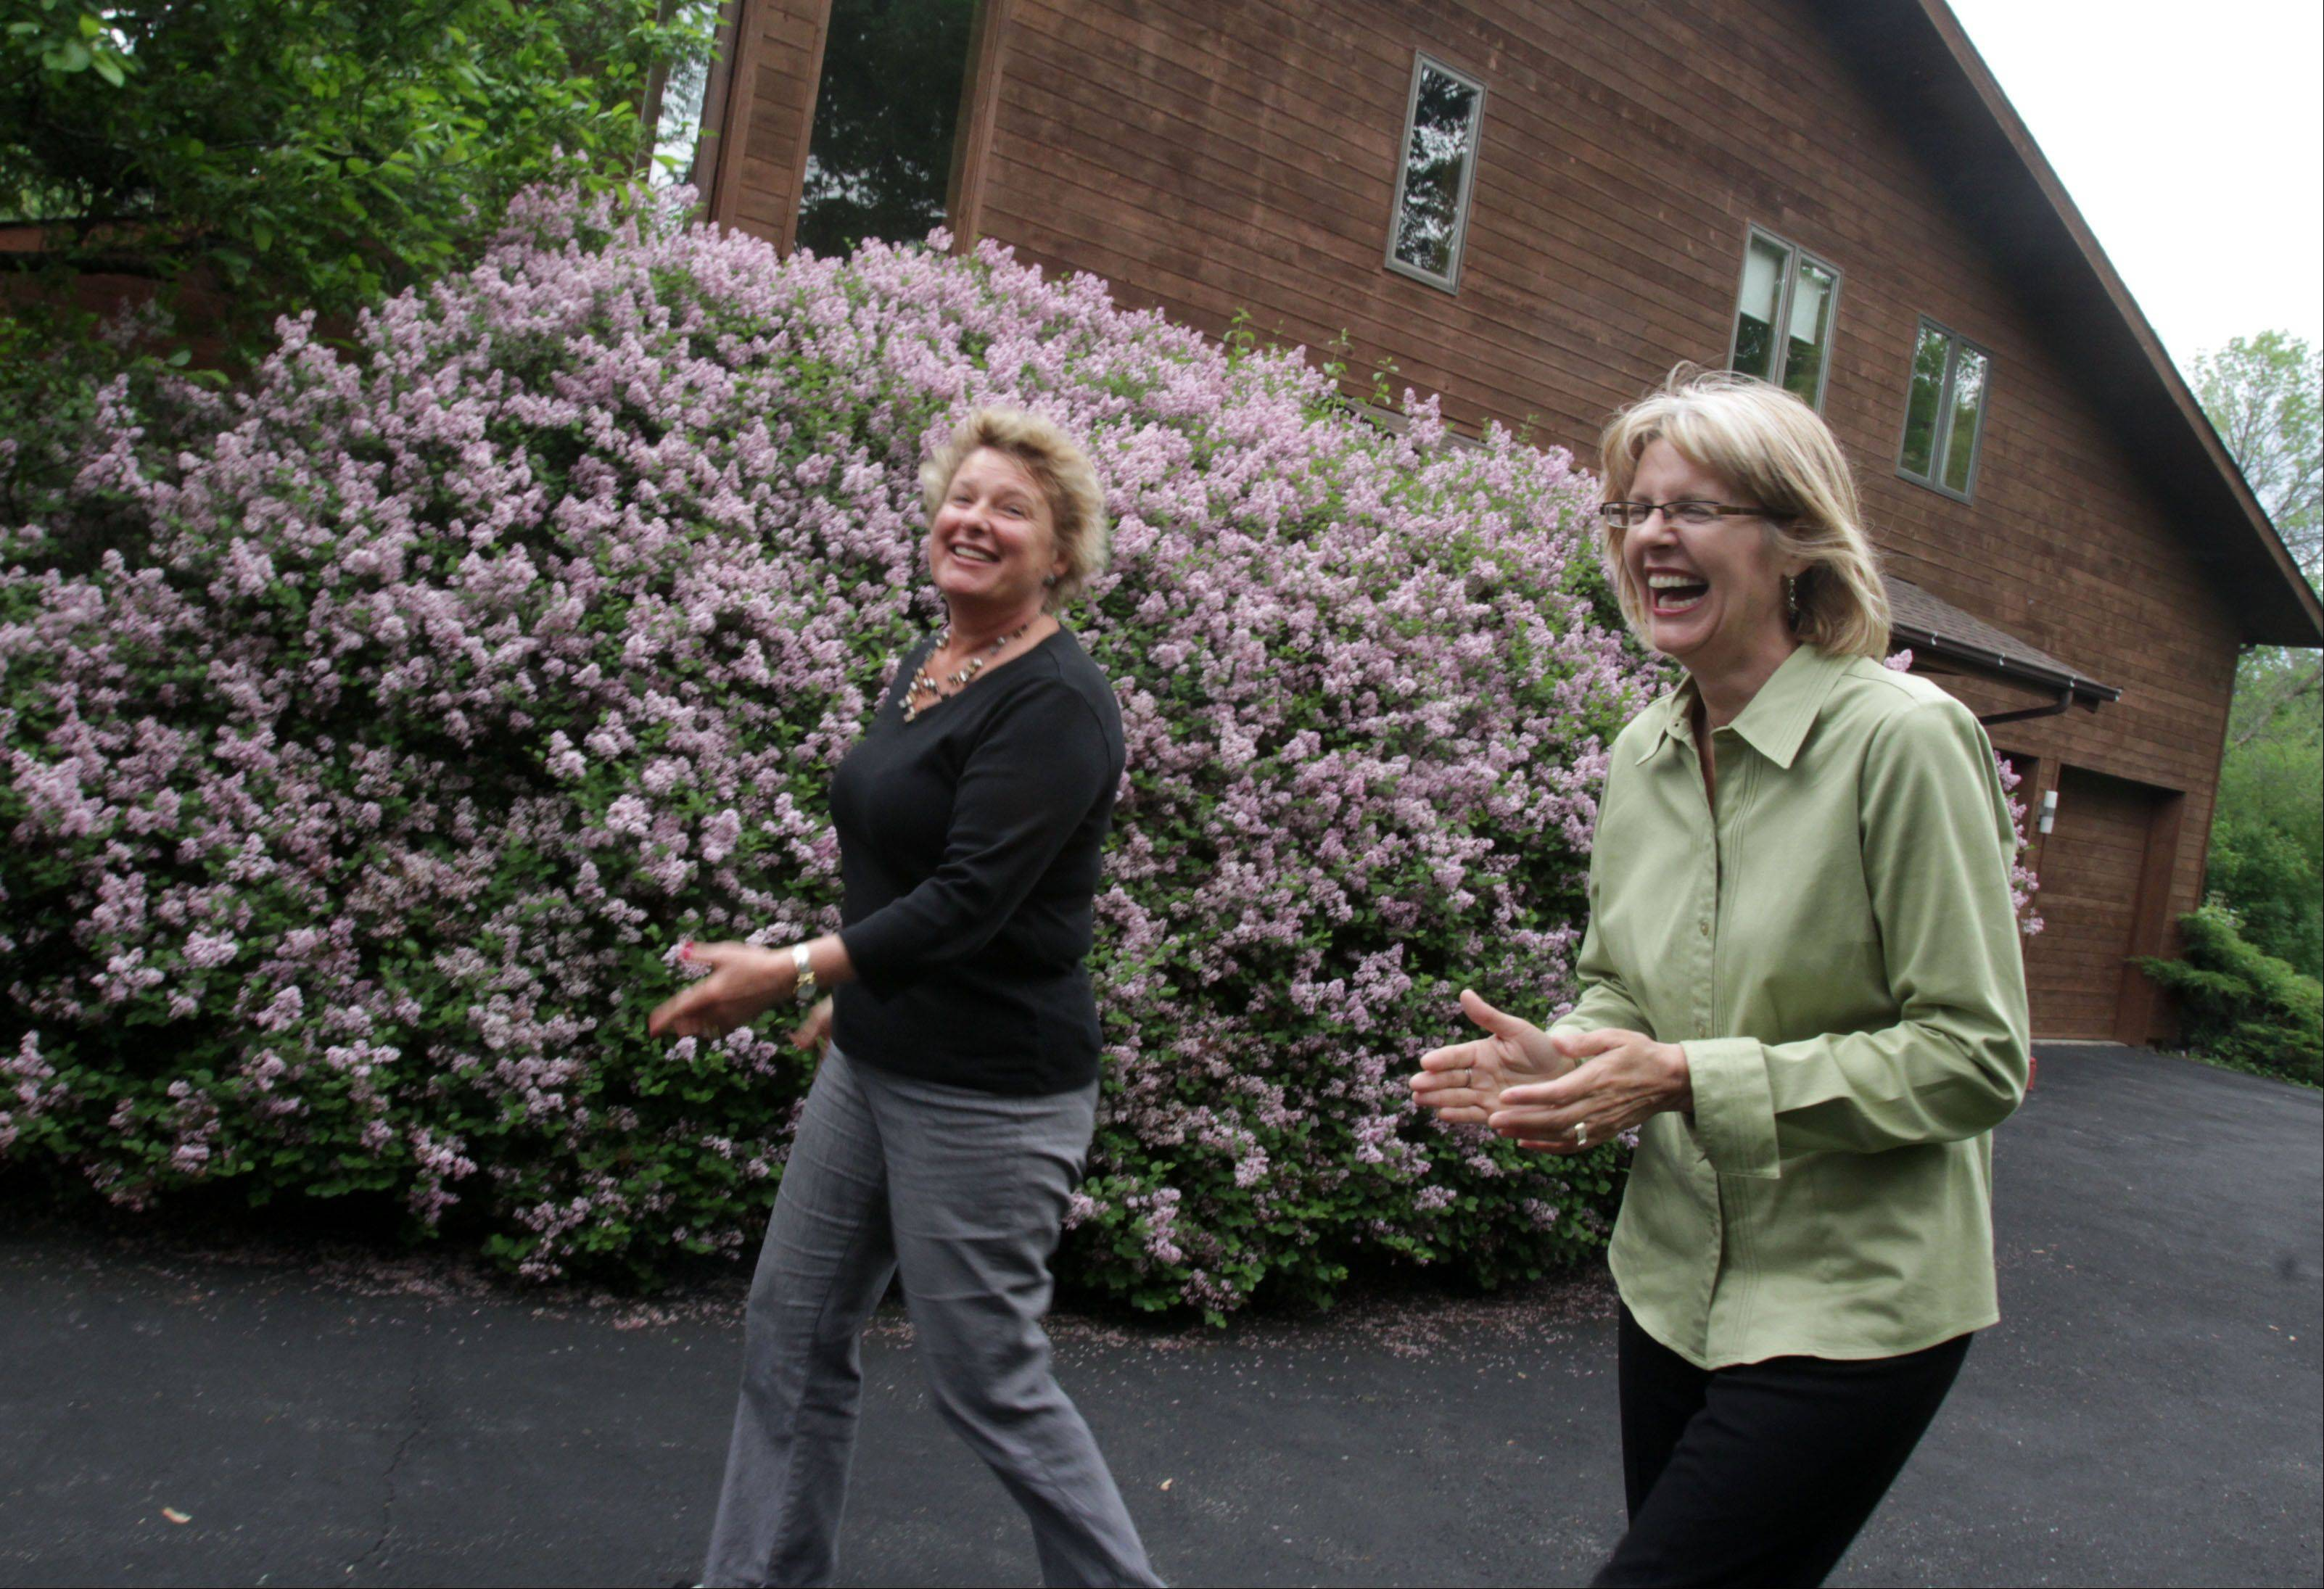 George LeClaire/gleclaire@dailyherald.com � Former homeowner Irisa Putnins, left, and Mary Loughman, the stager, enjoy a moment outside of Putnins former home in Deer Park that they improved and sold in one day last year. Here on May 31, 2013.